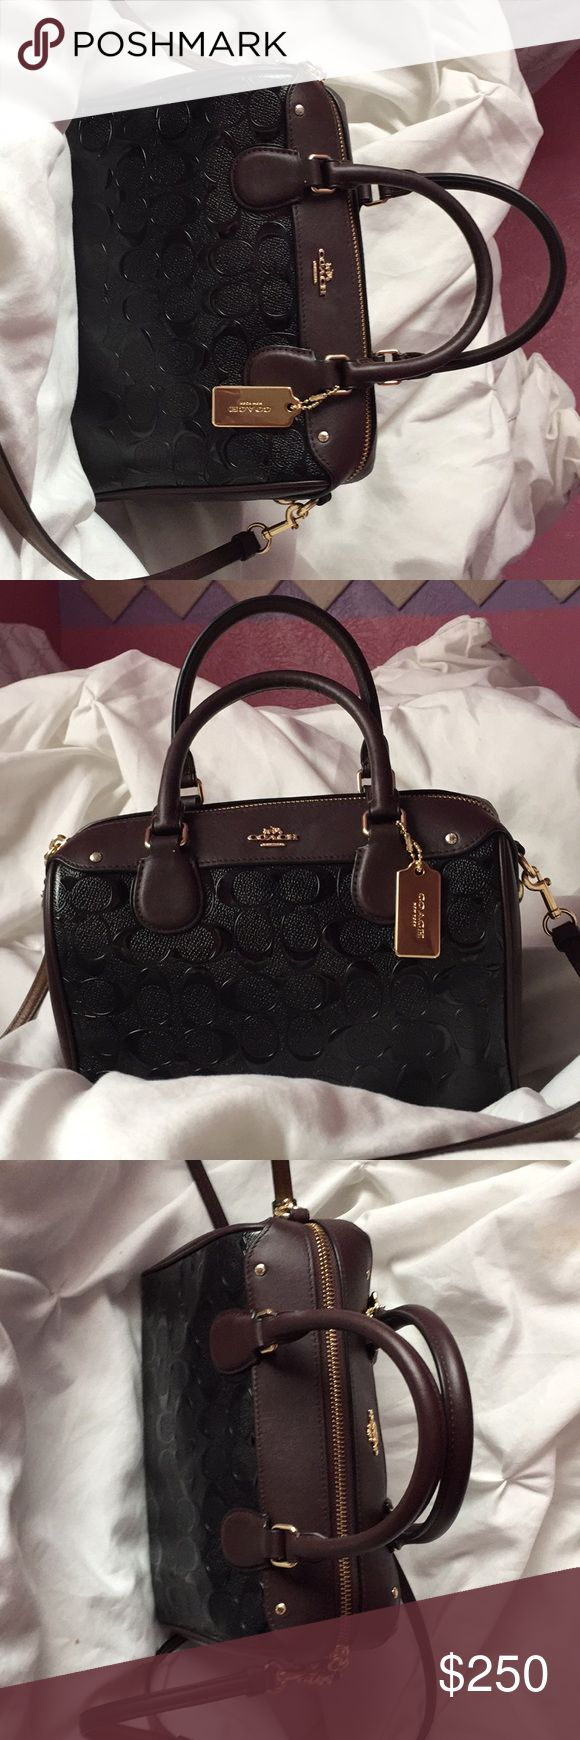 Cute crossbody bag brand Coach Really cute to take out on a date😉not to oversized and has the option to take off crossbody belt. I only have taken it out 5 times to important events. It is a really elegant looking bag makes you look classy😊 Coach Bags Crossbody Bags